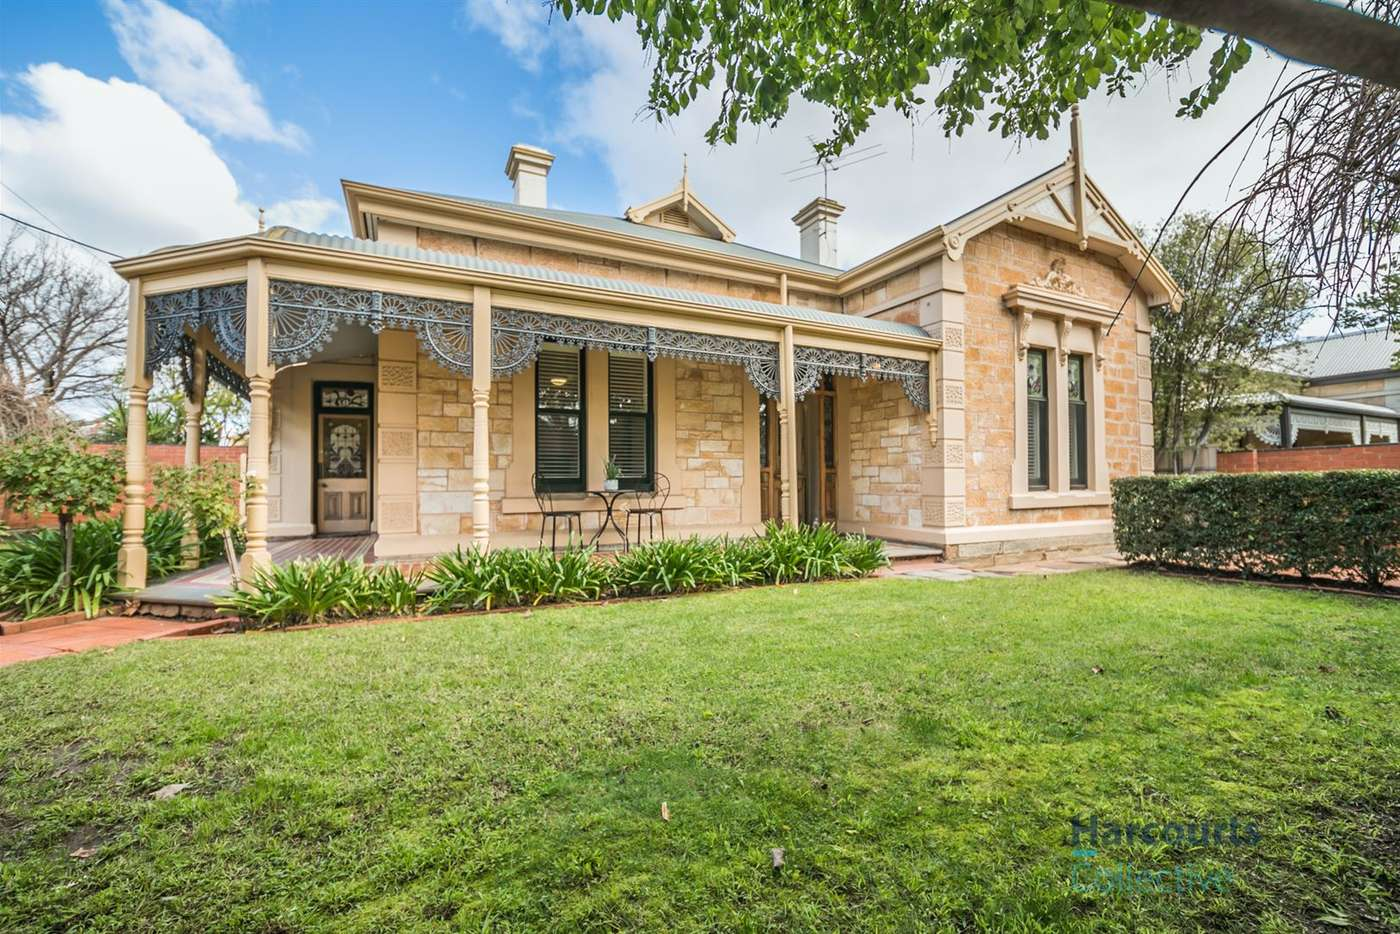 Main view of Homely house listing, 157 Fisher Street, Malvern SA 5061